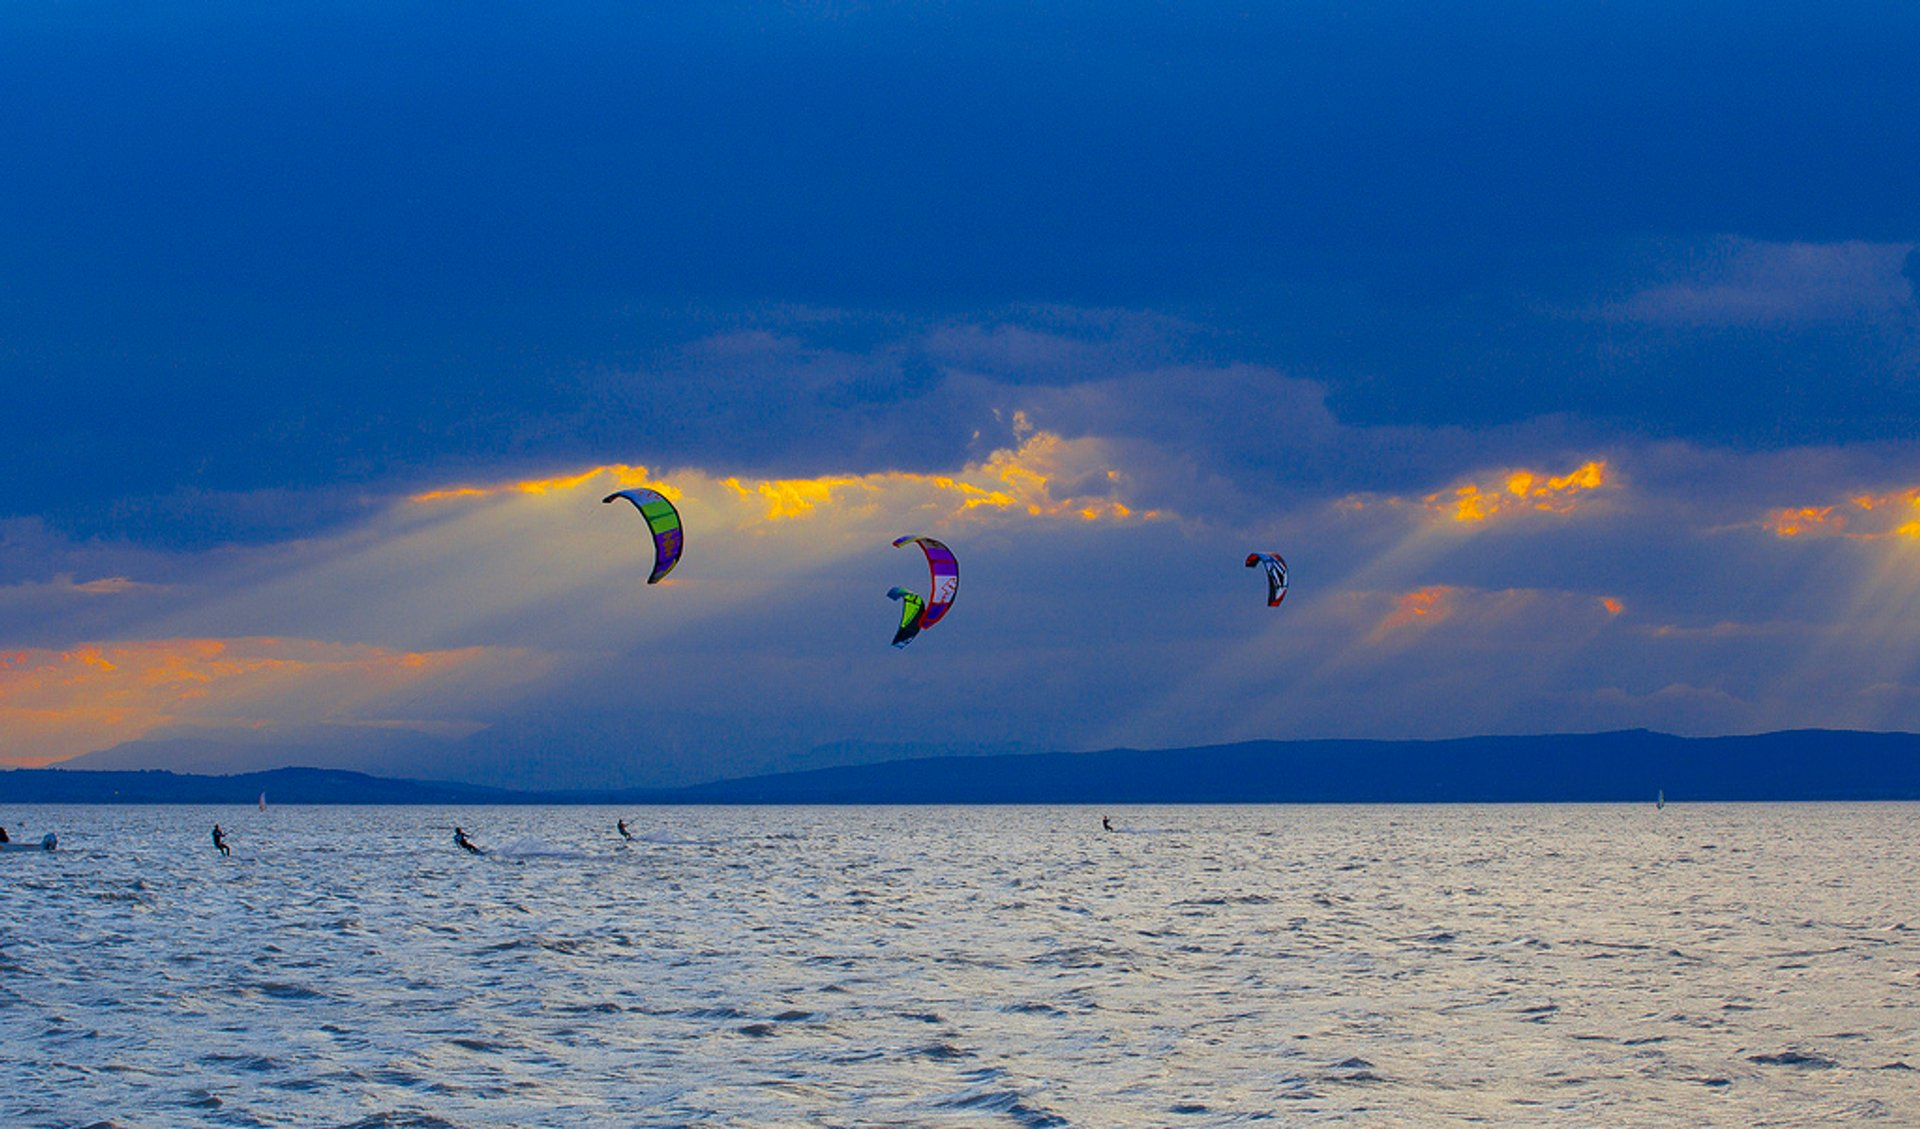 Wind and Kitesurfing in Austria - Best Season 2020